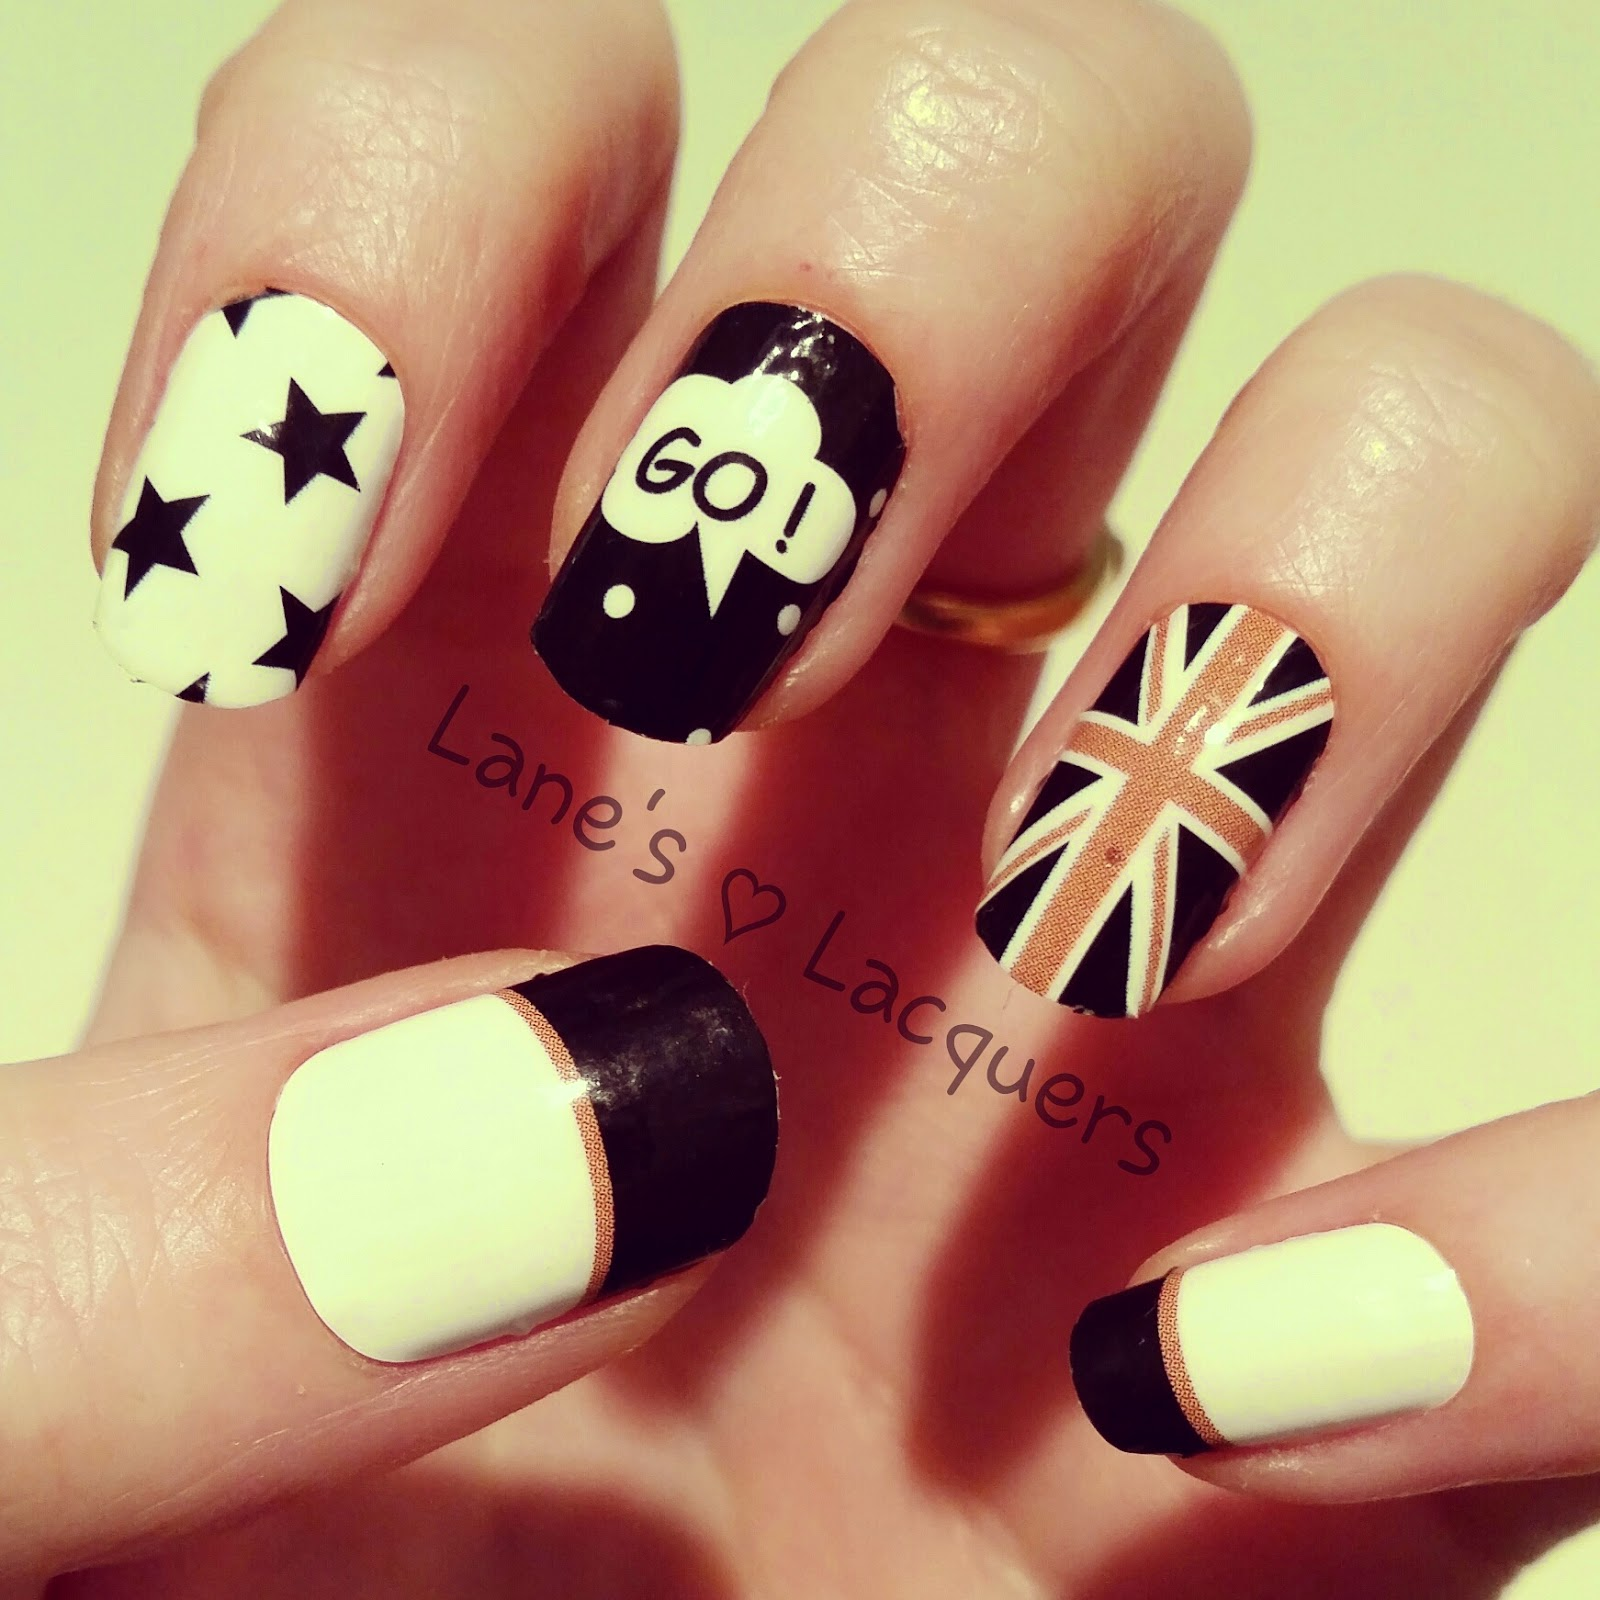 omg-nail-strips-monochrome-british-nail-art